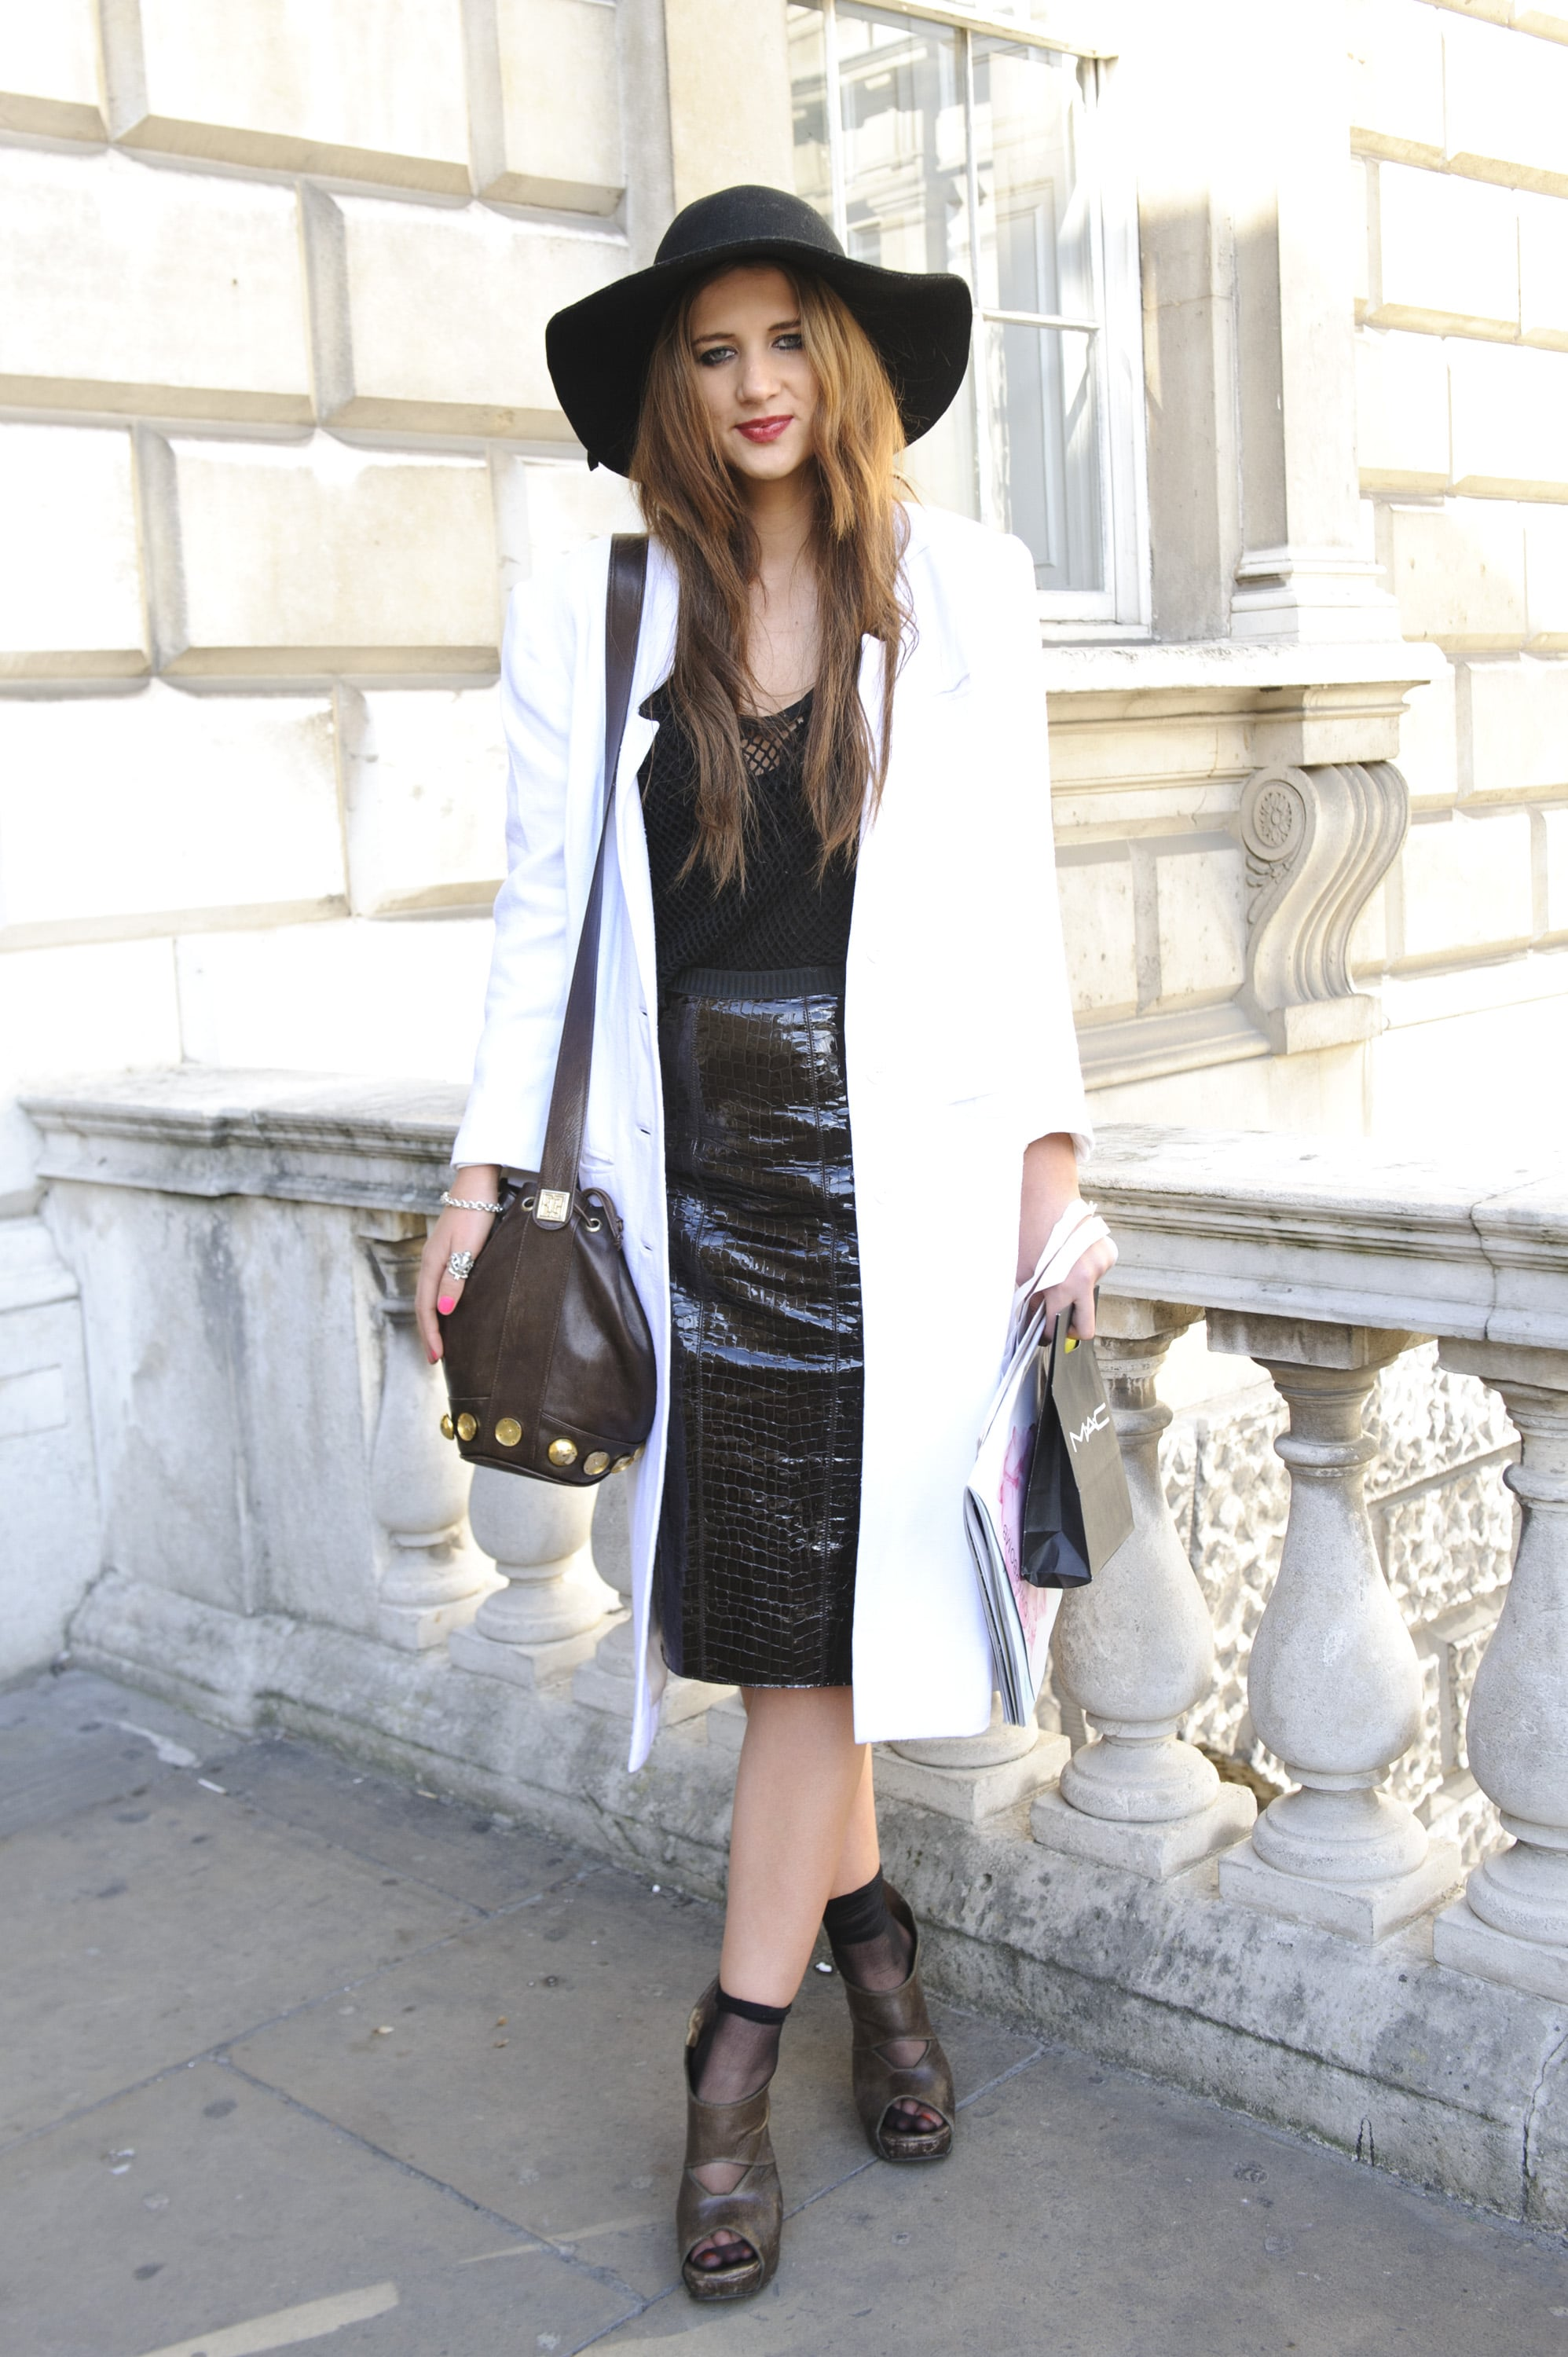 A monochromatic palette gets its slicked-up factor via leather finishes and one cool wide-brimmed hat.